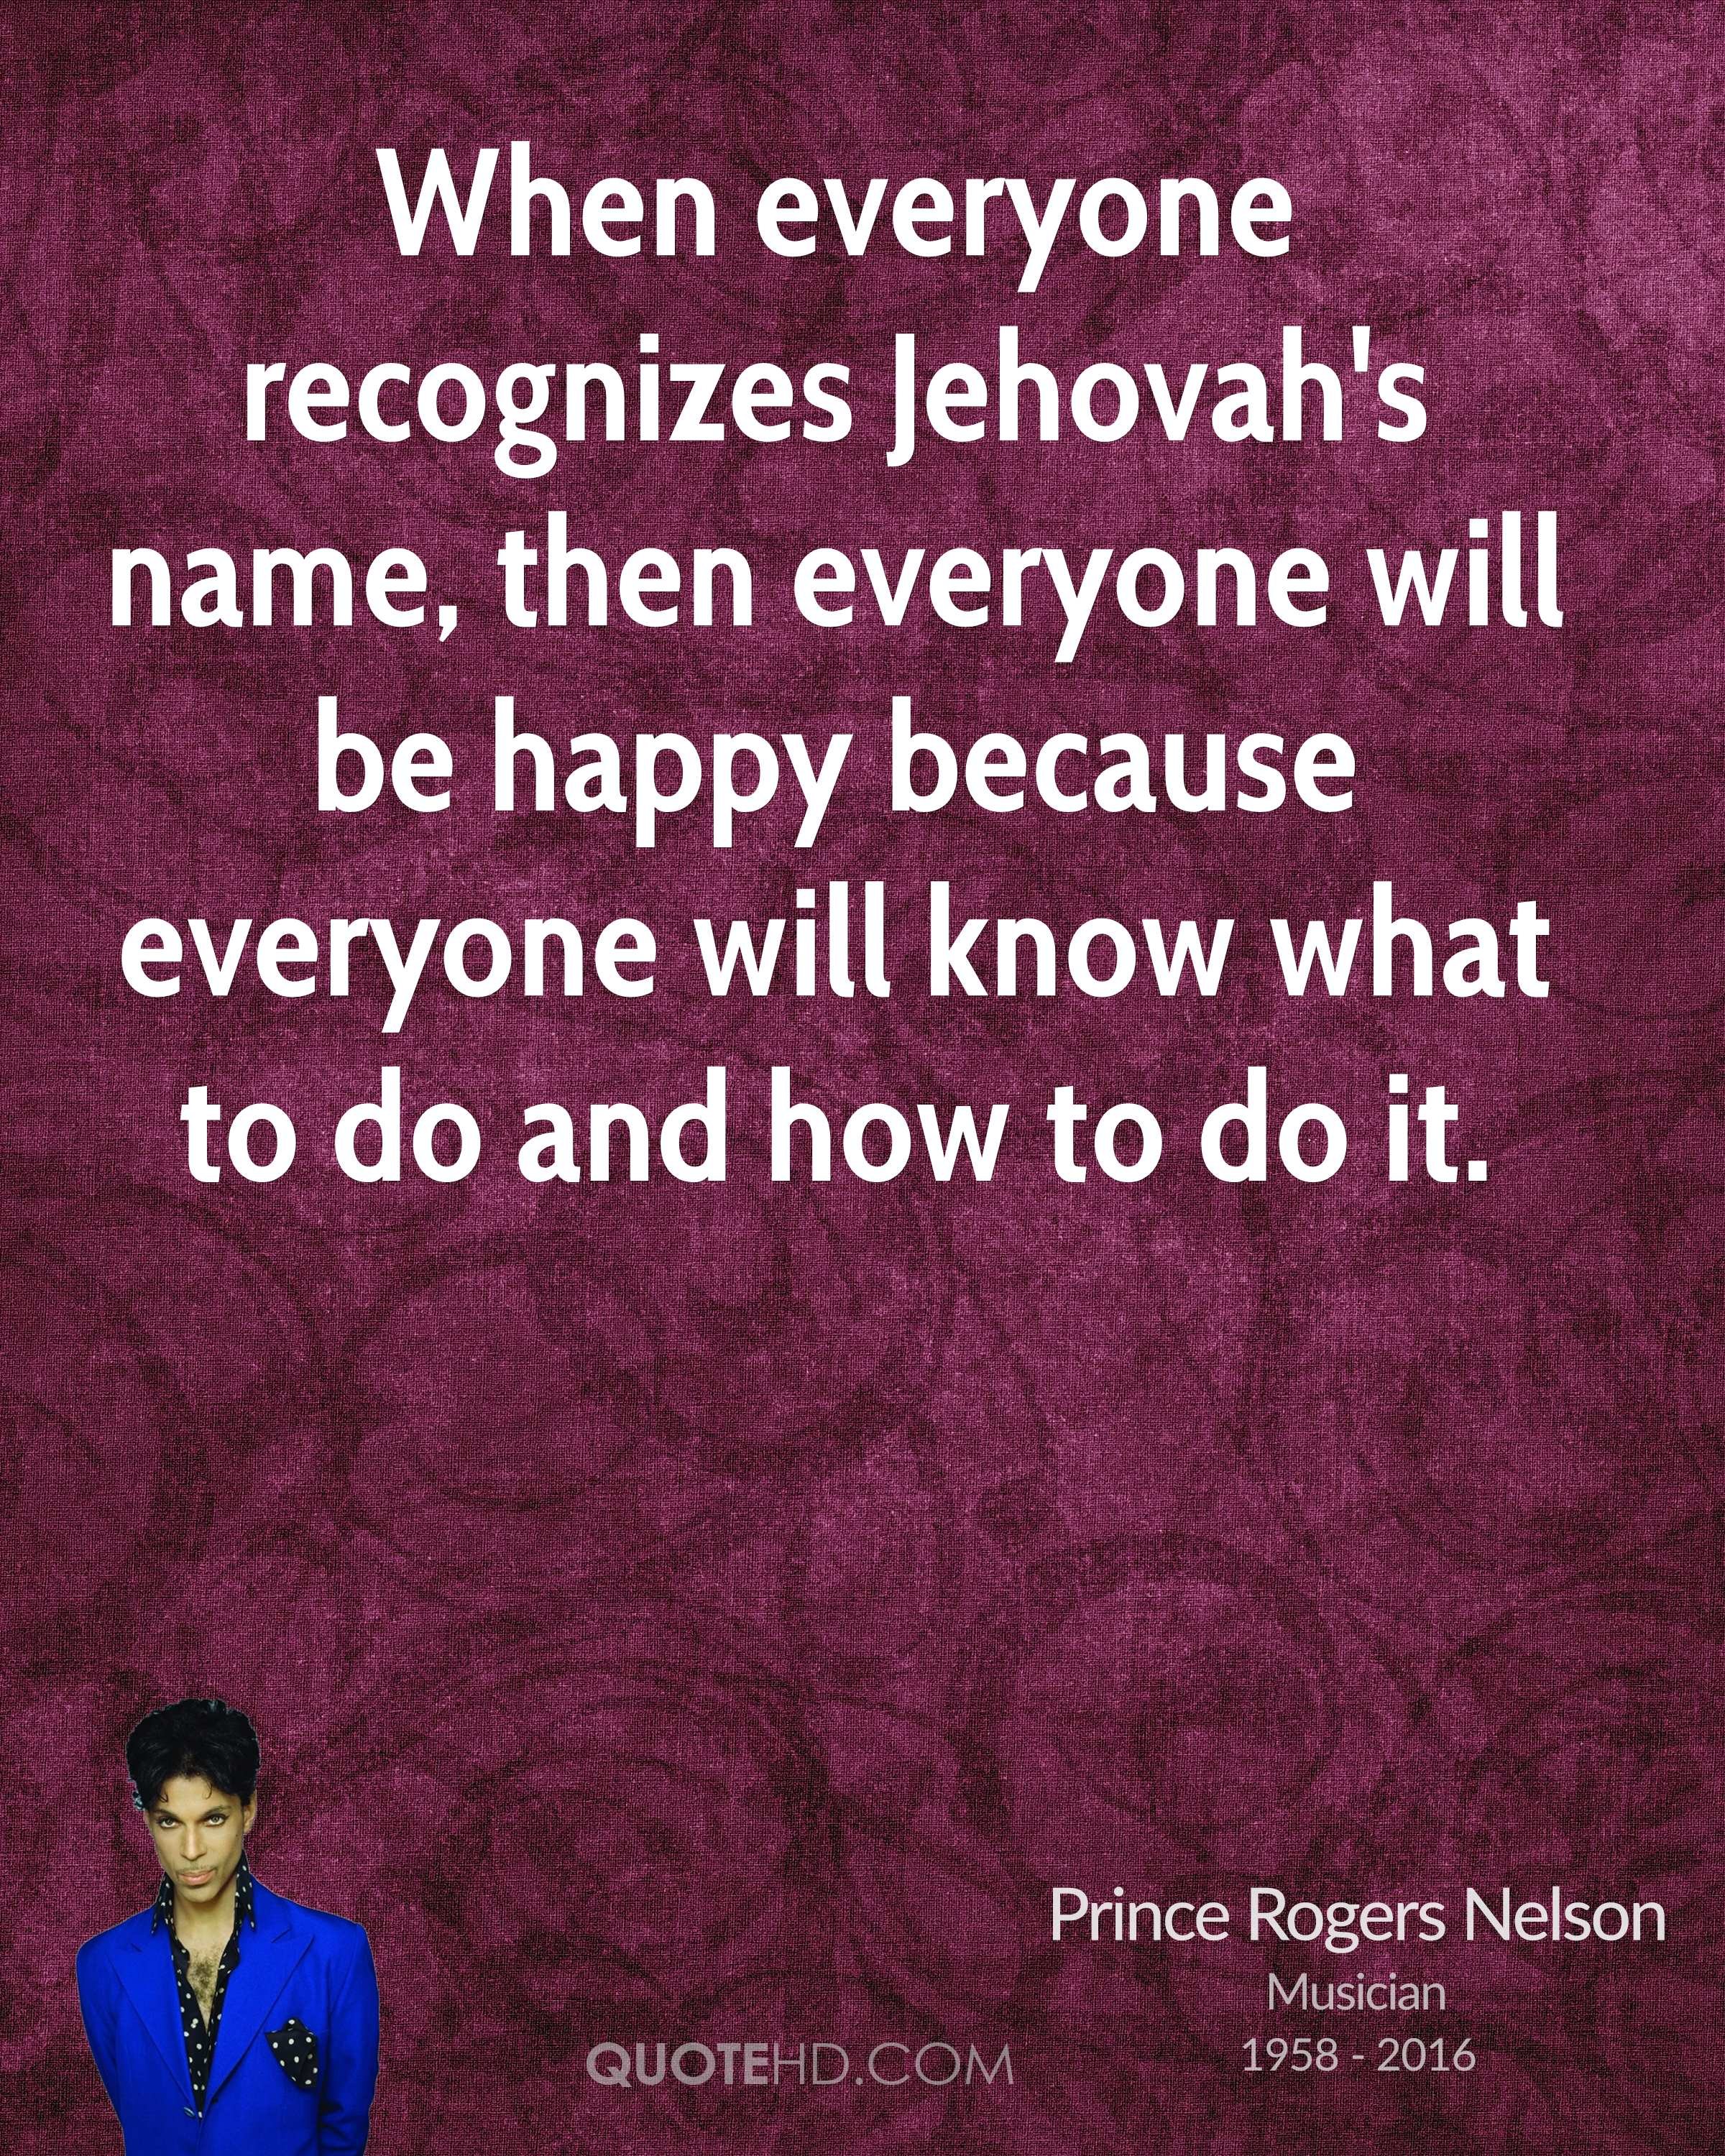 When everyone recognizes Jehovah's name, then everyone will be happy because everyone will know what to do and how to do it.